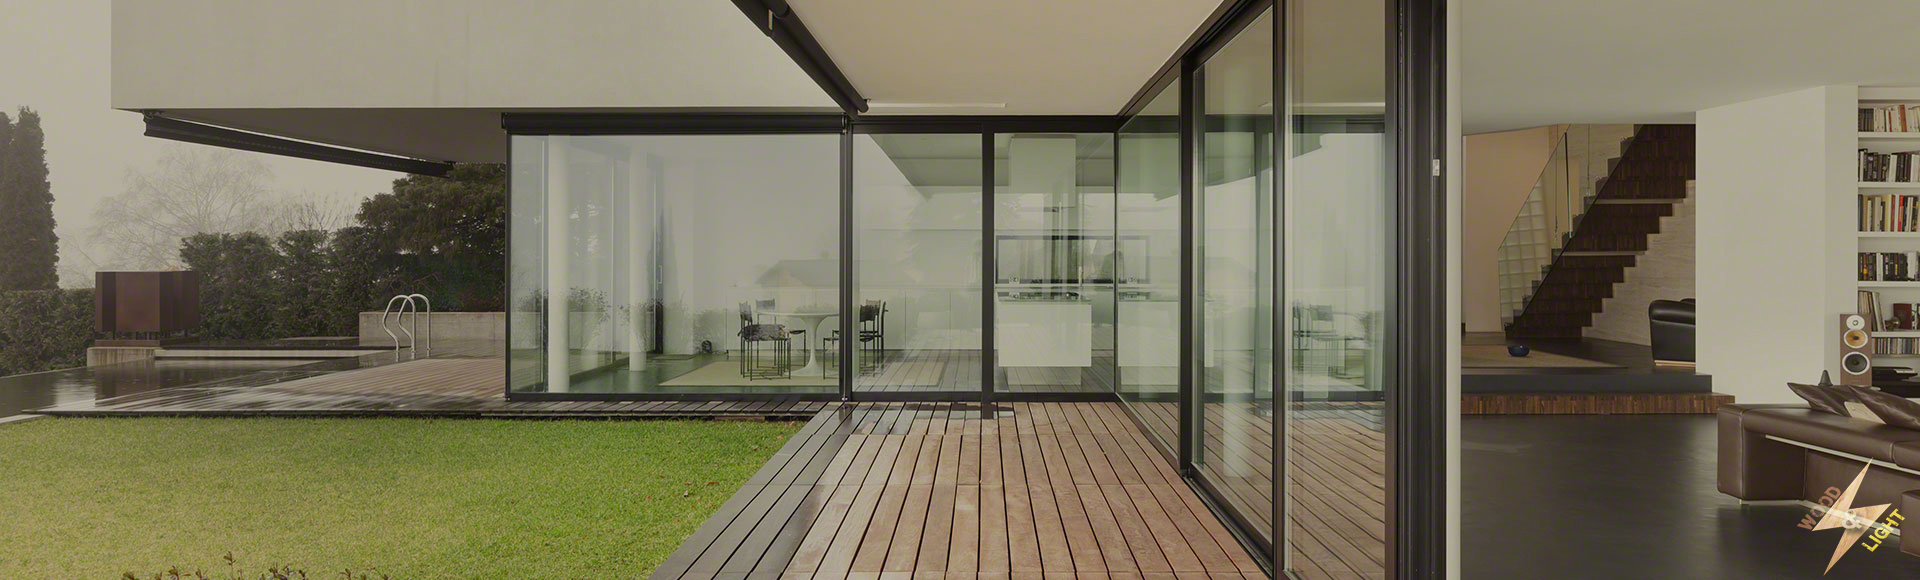 Slider-3-Travaux-villa-Beersel-Wood-and-light-SPRL-Bruxelles